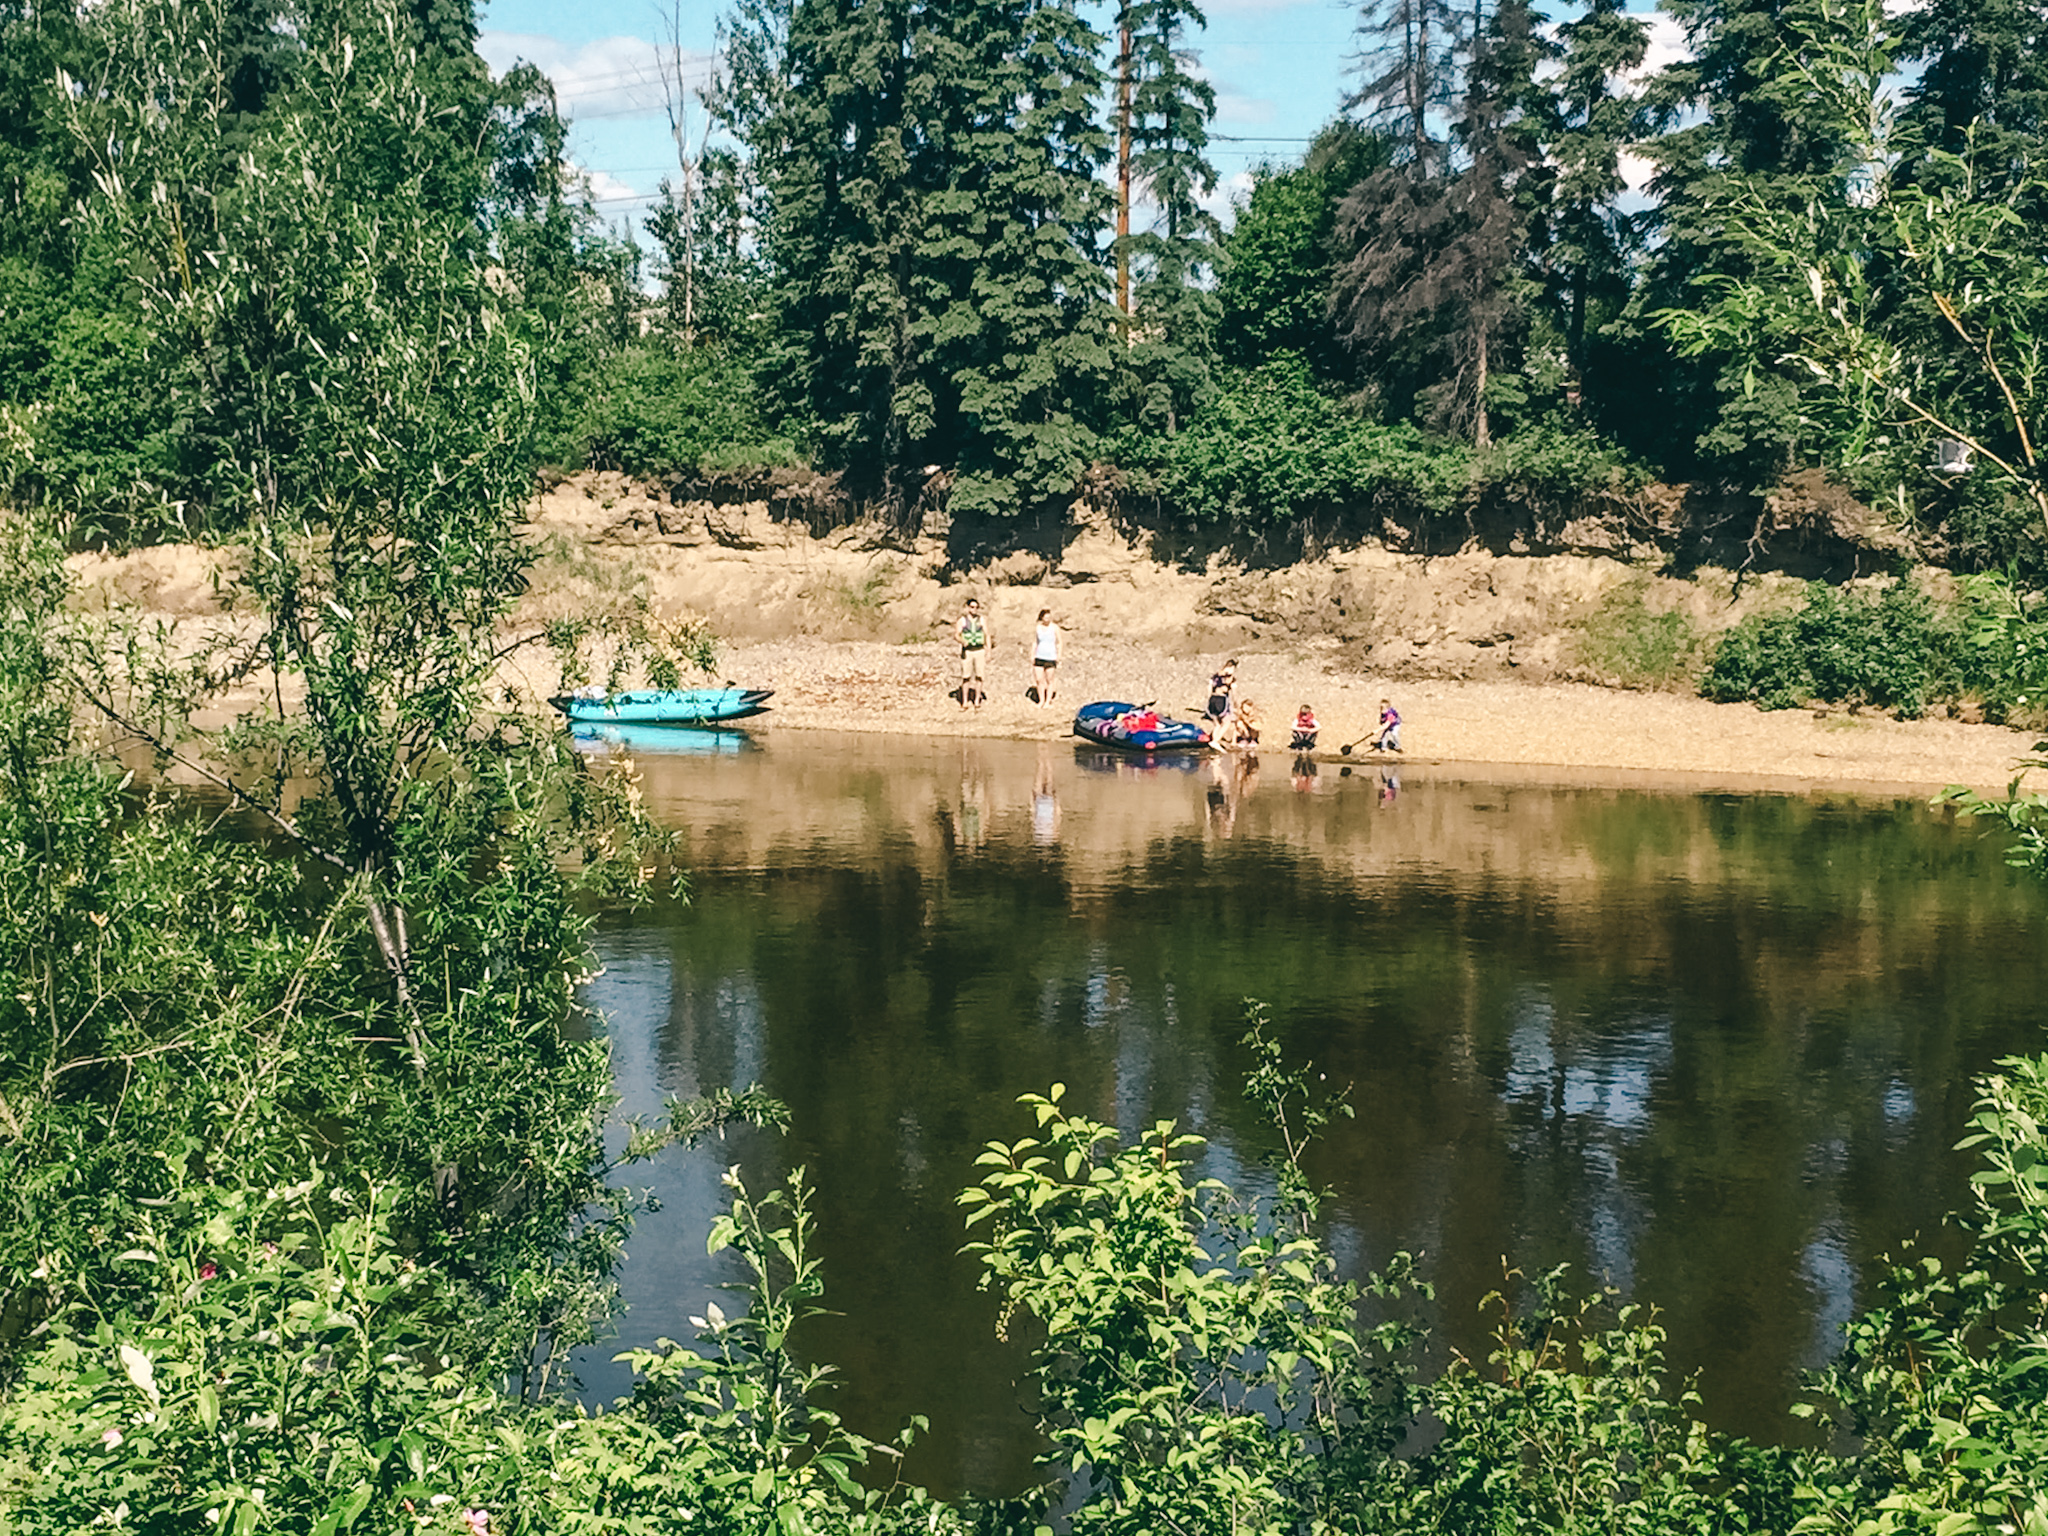 Vacation and road tripping in Alaska! Spend a relaxed day in Fairbanks and explore Chena River walk, one of the best things to do in Fairbanks! #travel #usa